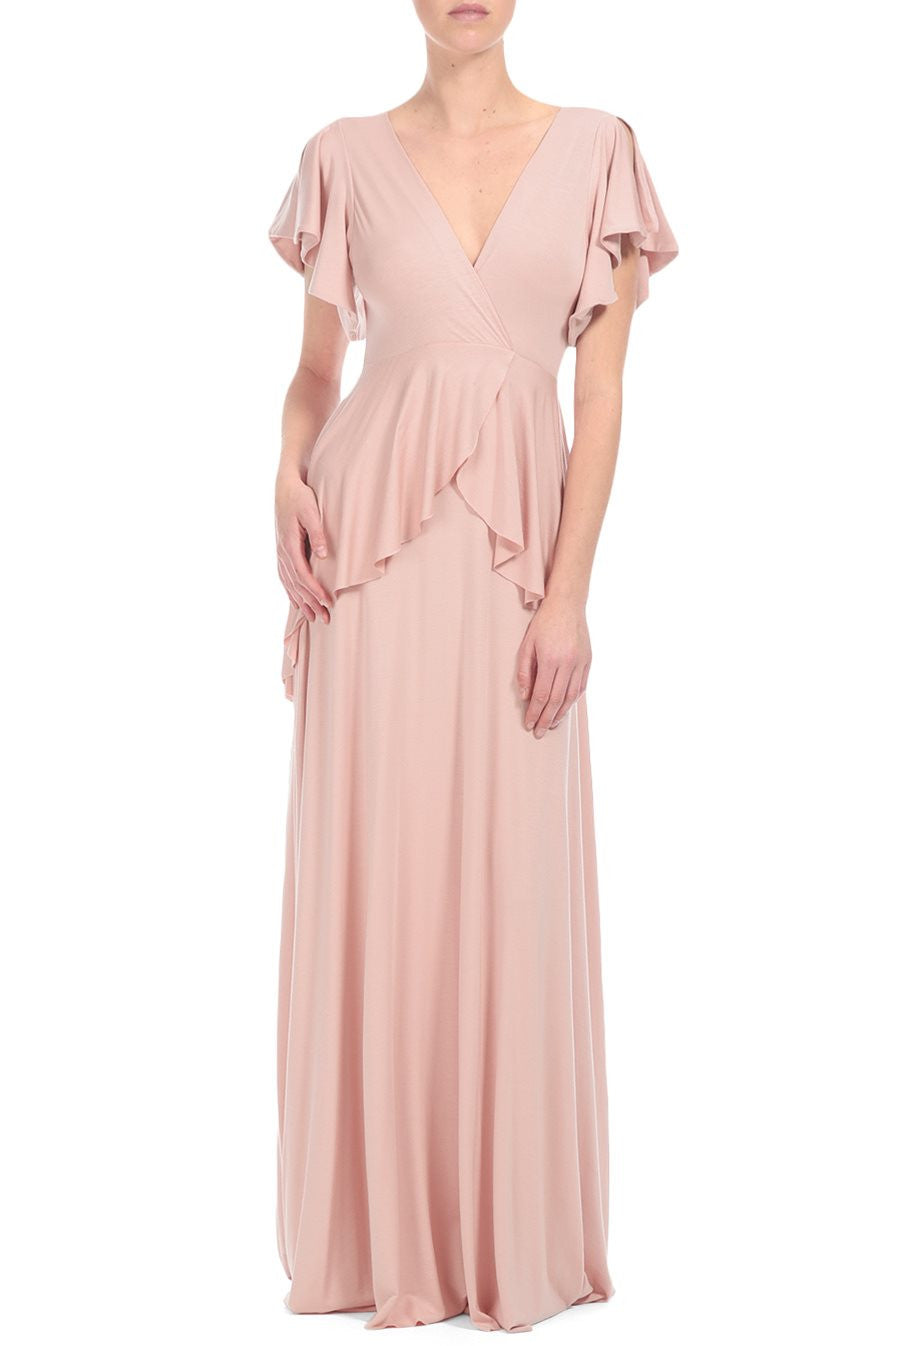 GATSBY DRESS - MESA